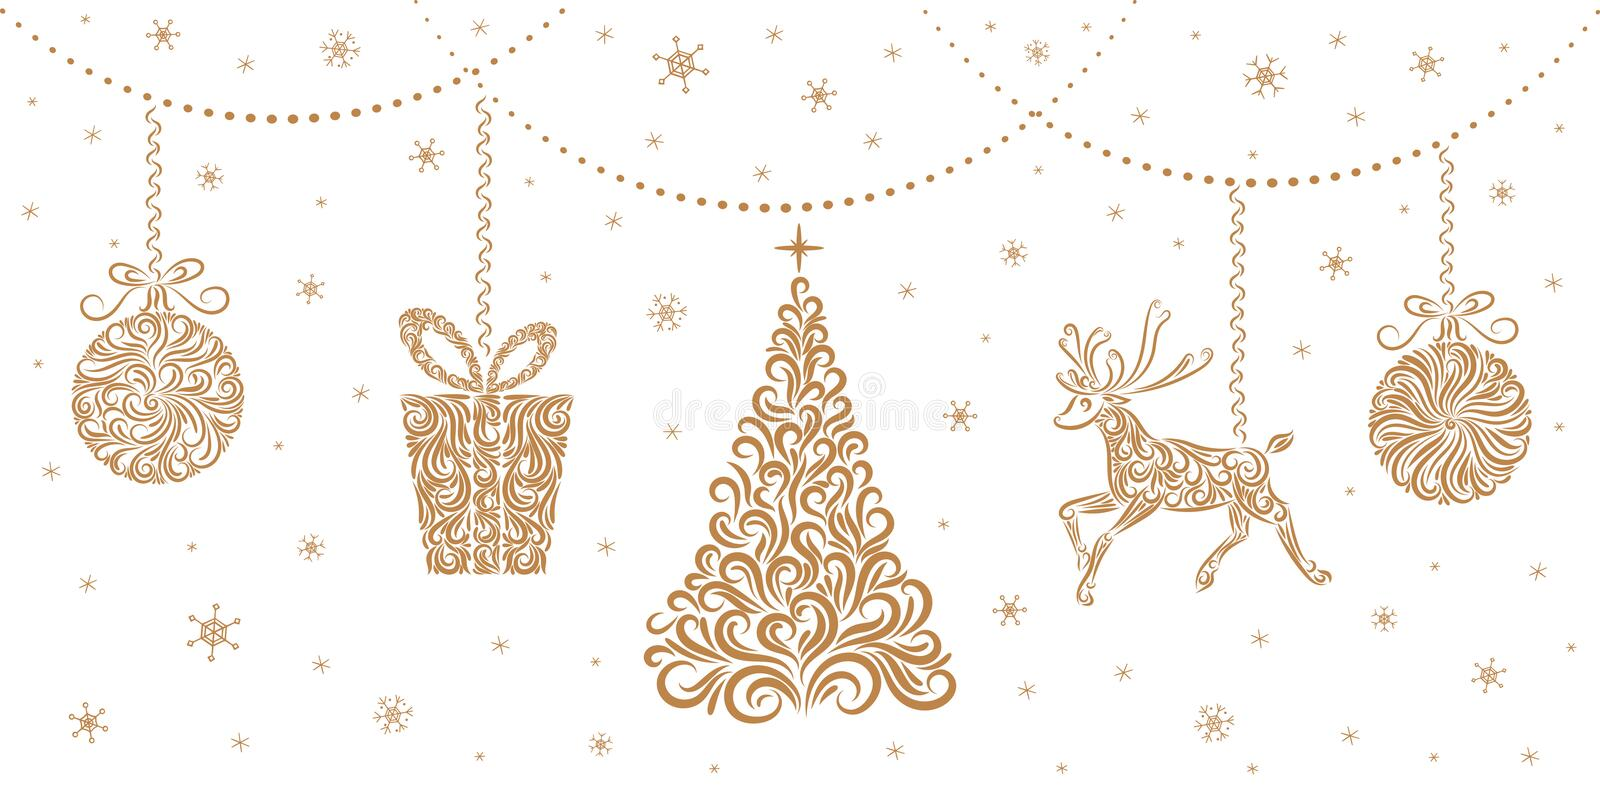 Christmas decorations: Christmas tree, reindeer, gift, Christmas balls. Isolated objects on a white background. vector illustration